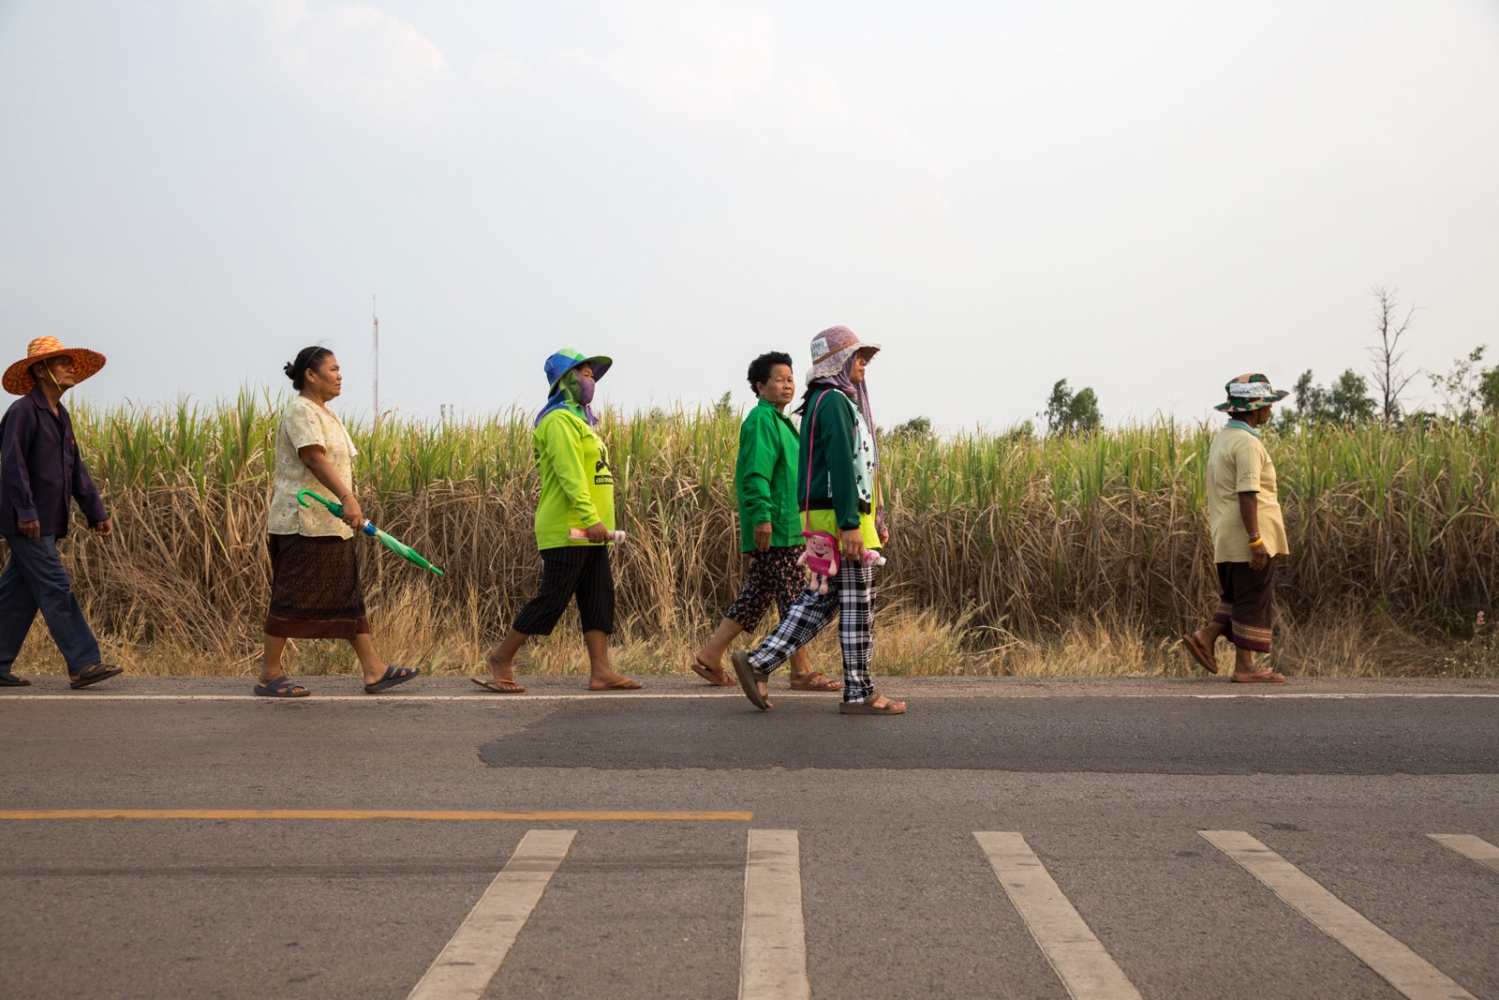 Members of the Wanon Niwat environmental group walk around their village collecting donations for a traditional event in which they will bless the spirt of the nearby lake, praying for its longevity.